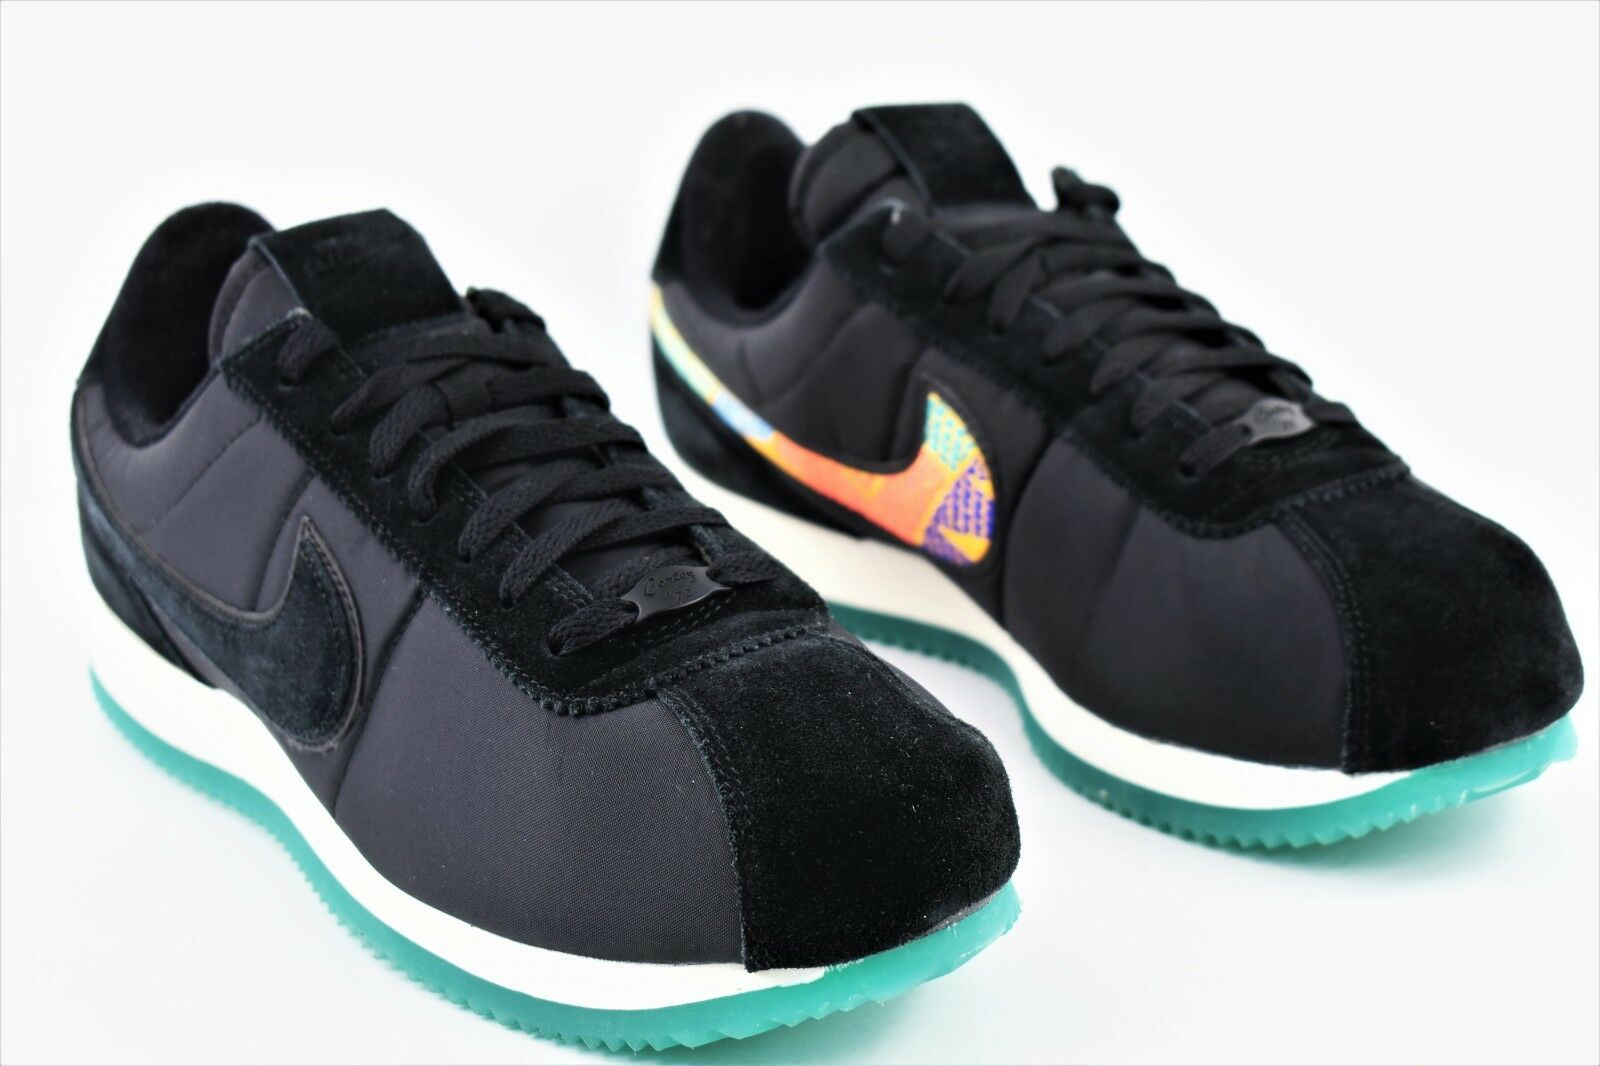 Nike Cortez Basic LHM QS Mens Size 11.5 shoes Latino Heritage Month 885407 001